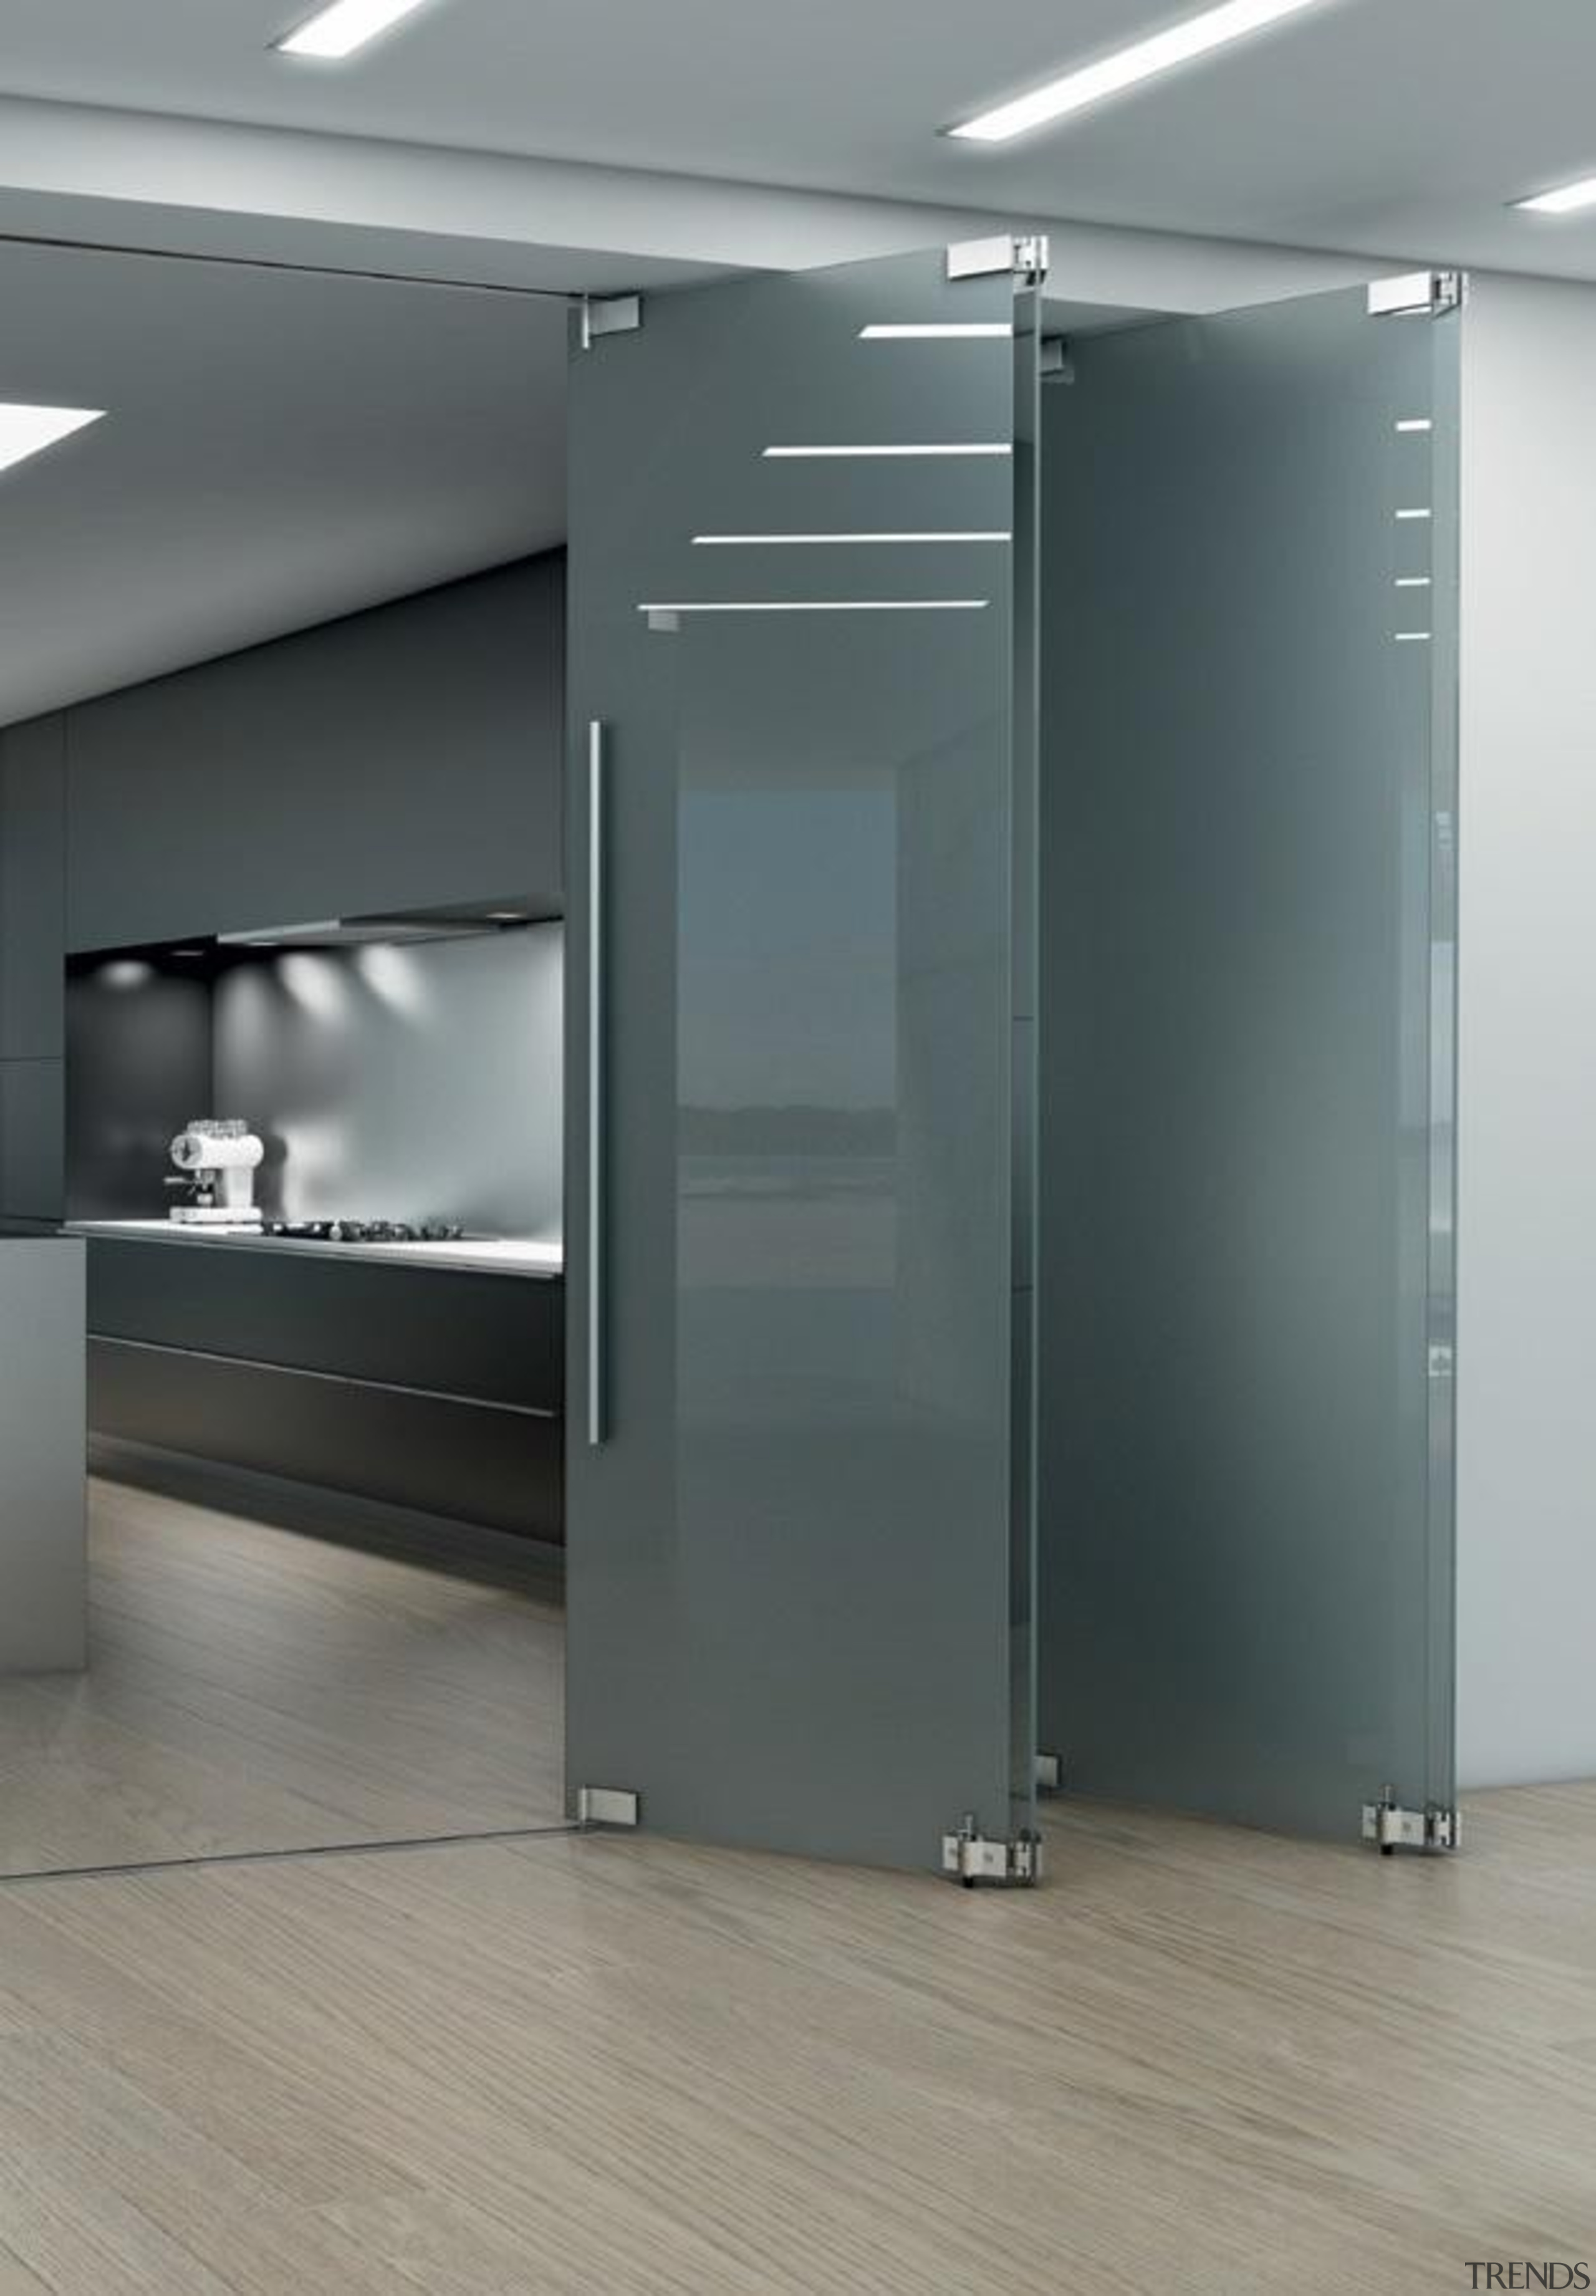 Mardeco International Ltd is an independent privately owned floor, glass, product design, gray